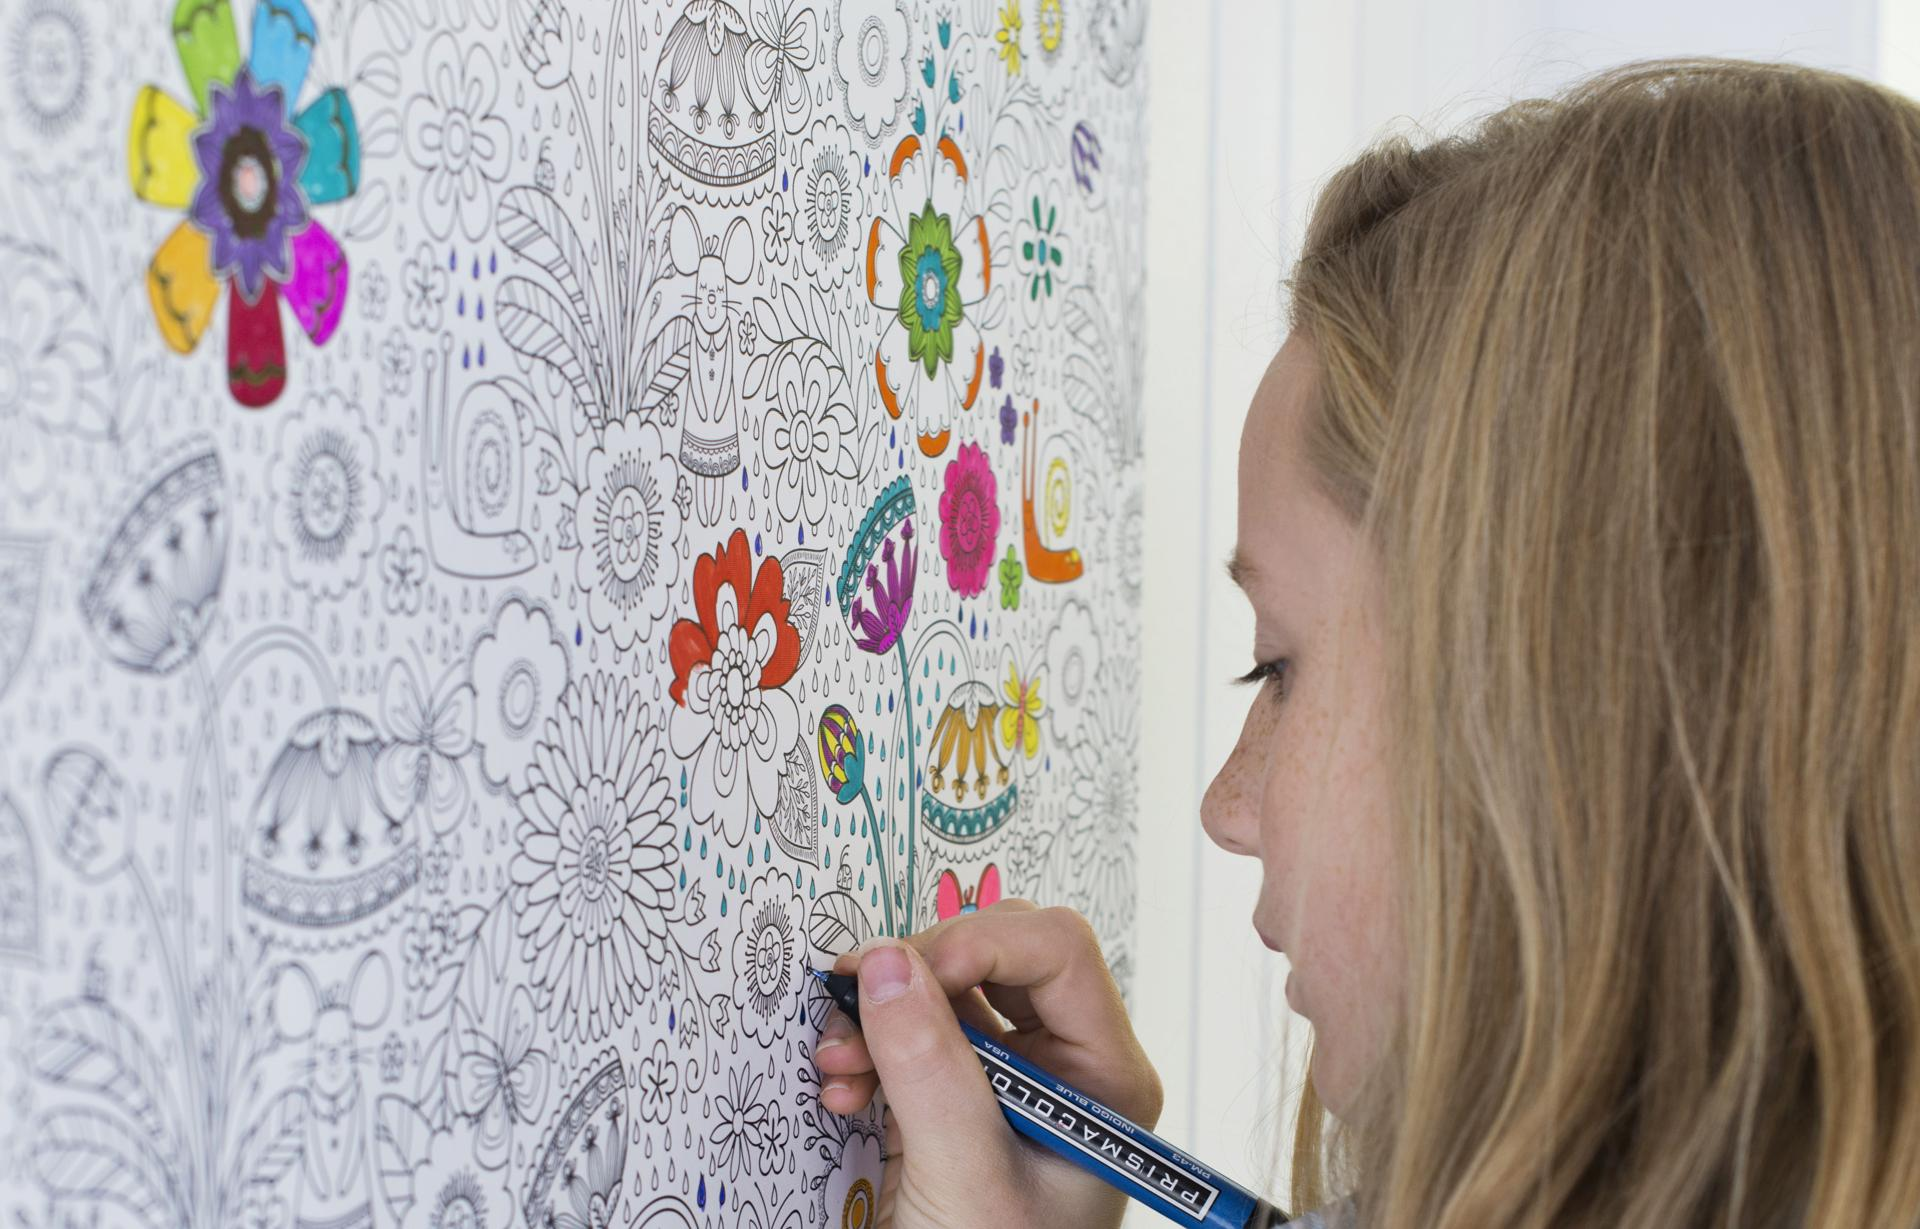 Captivating Coloring Book Wallpaper Ideas